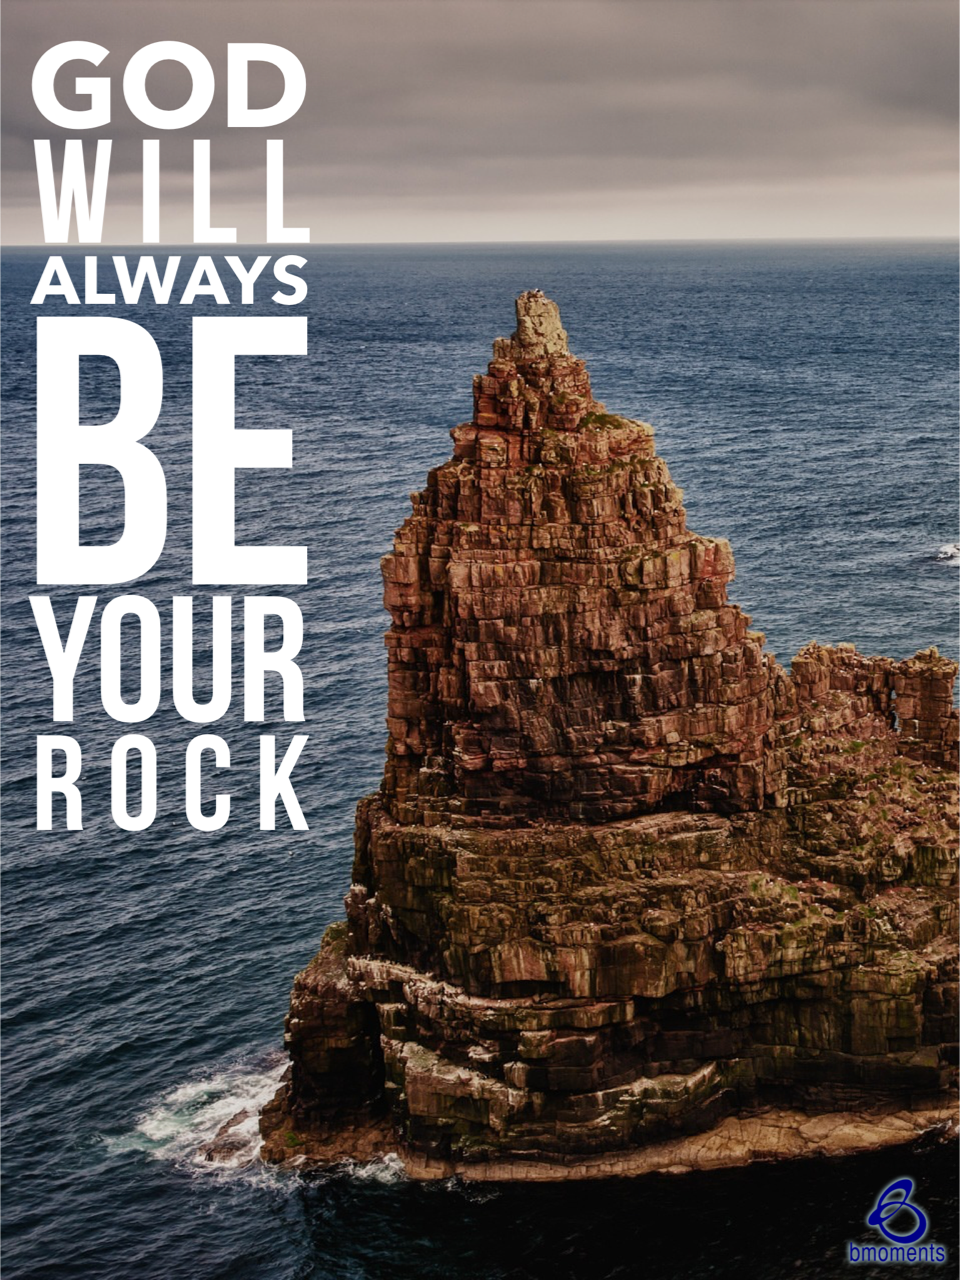 The Lord Is Your Rock and Refuge